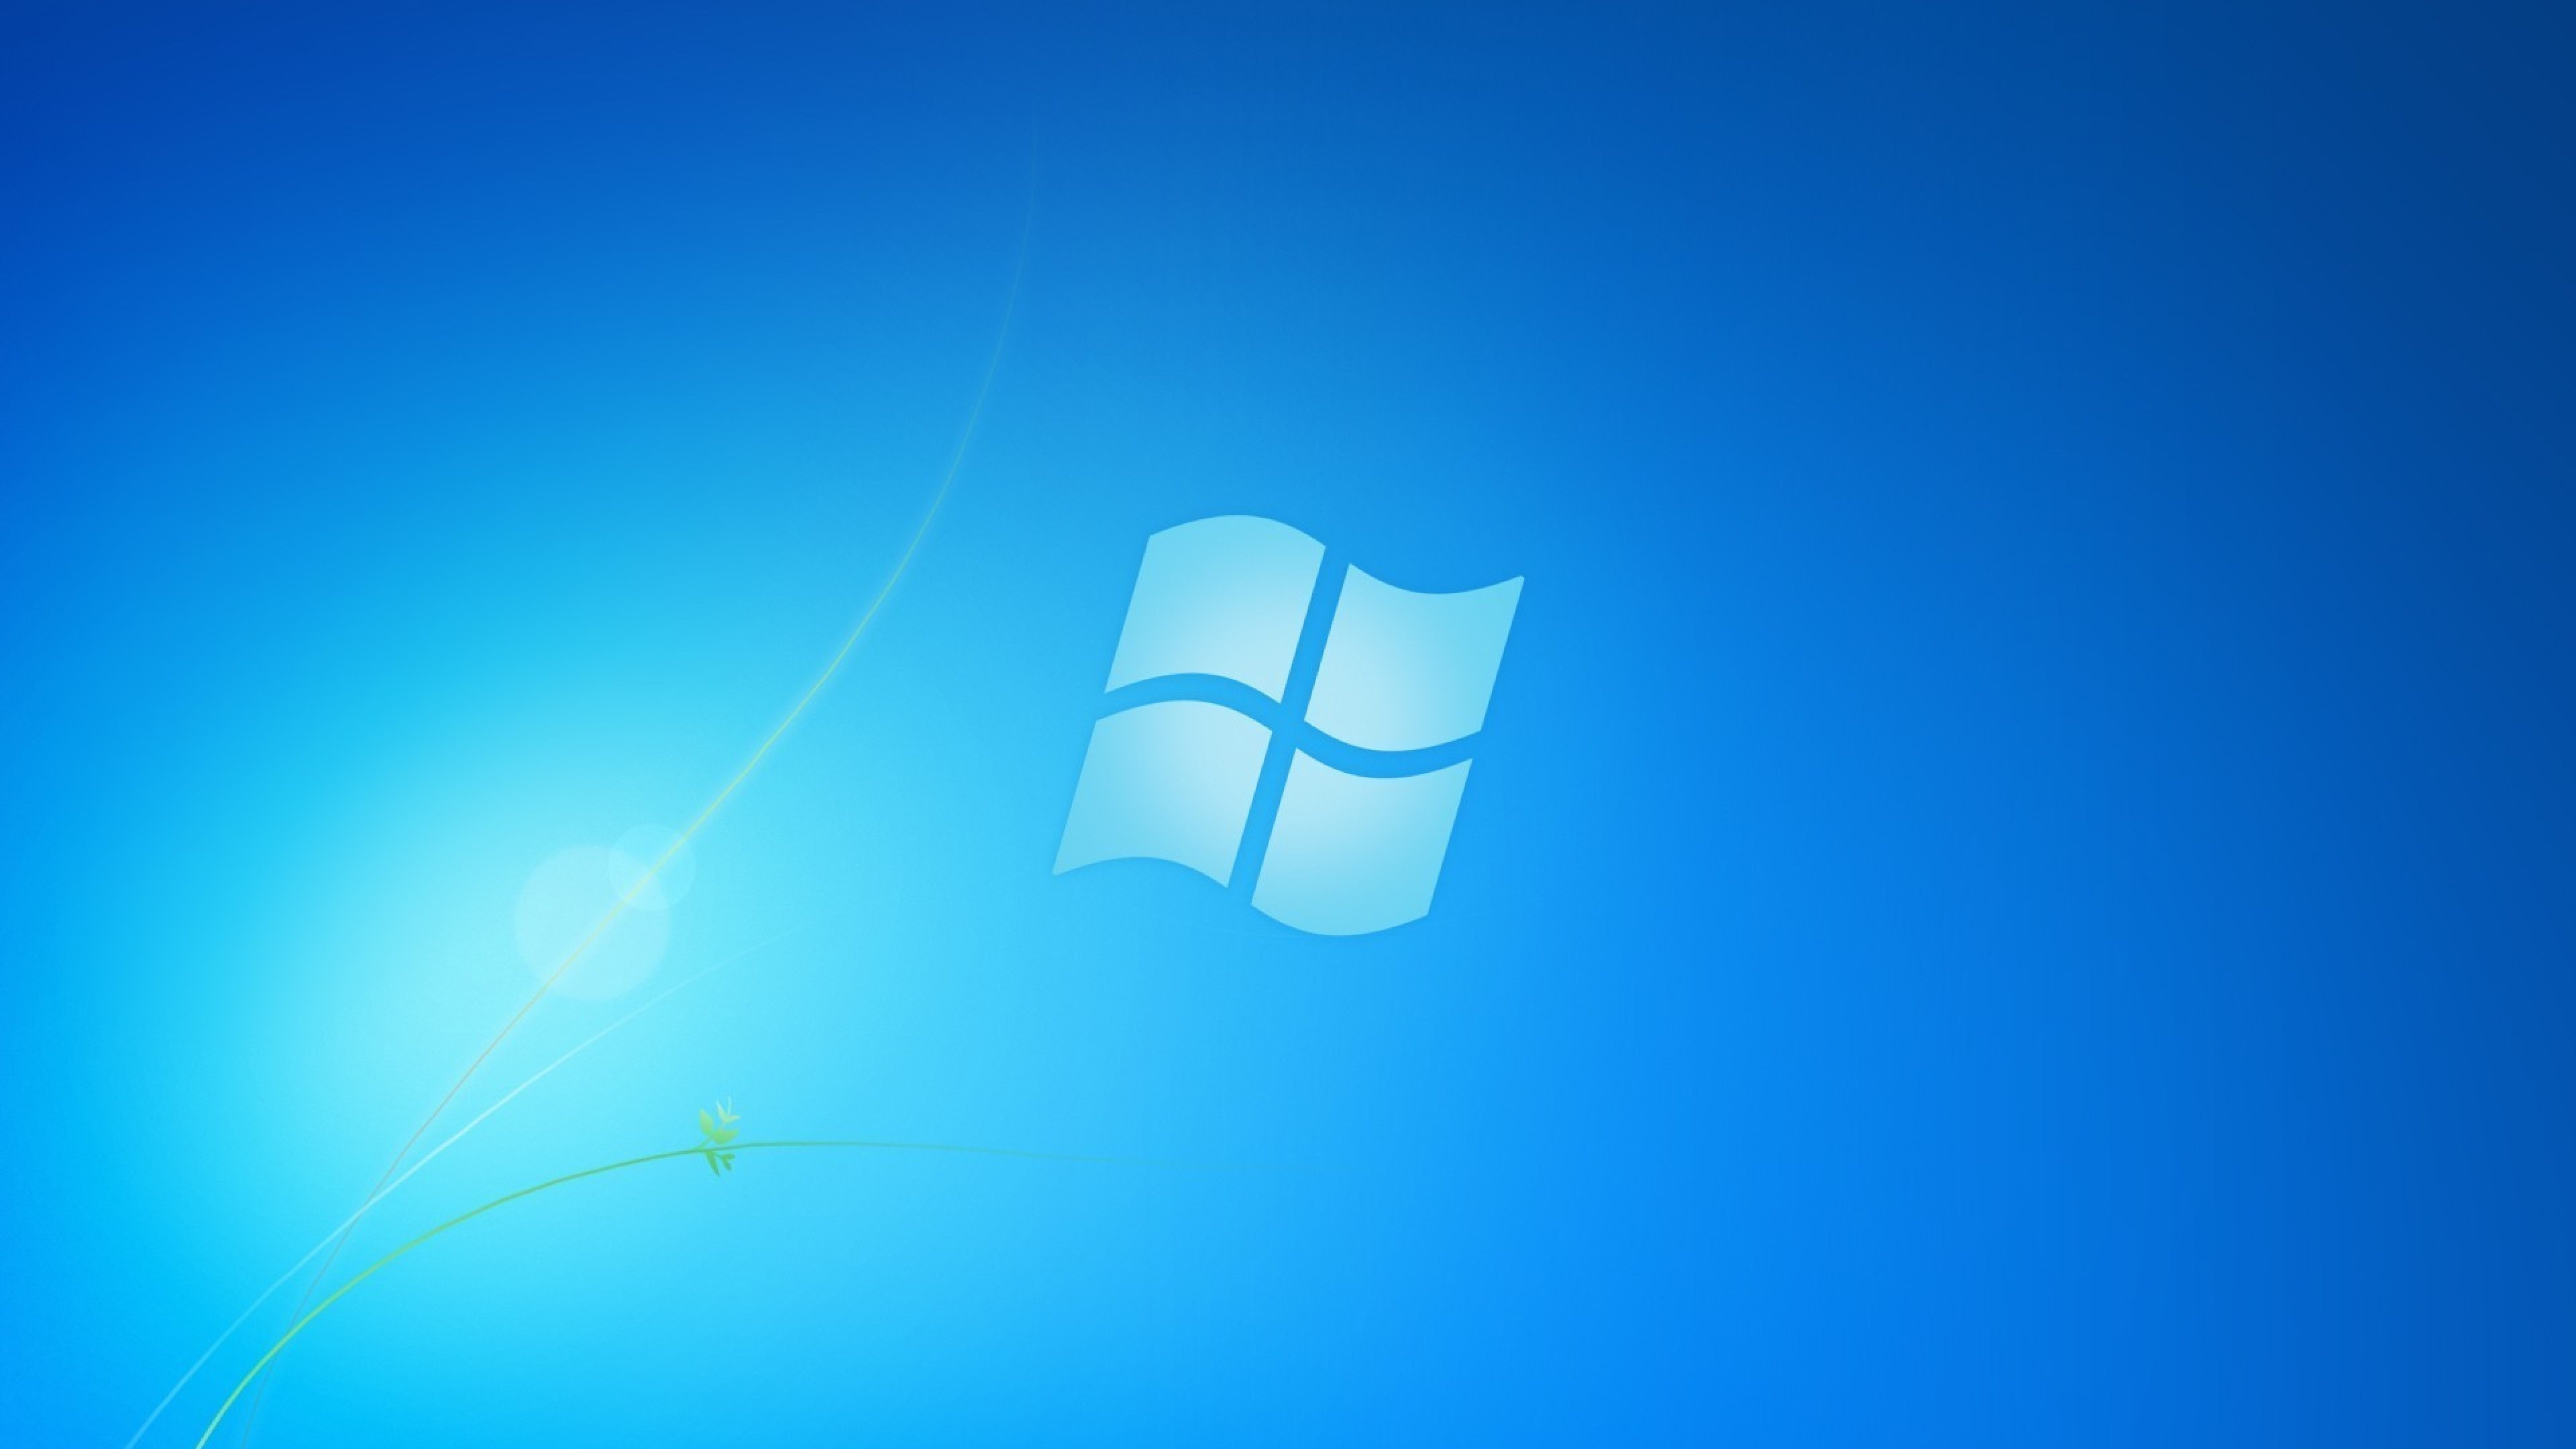 4K Windows 10 Wallpapers  WallpaperSafari